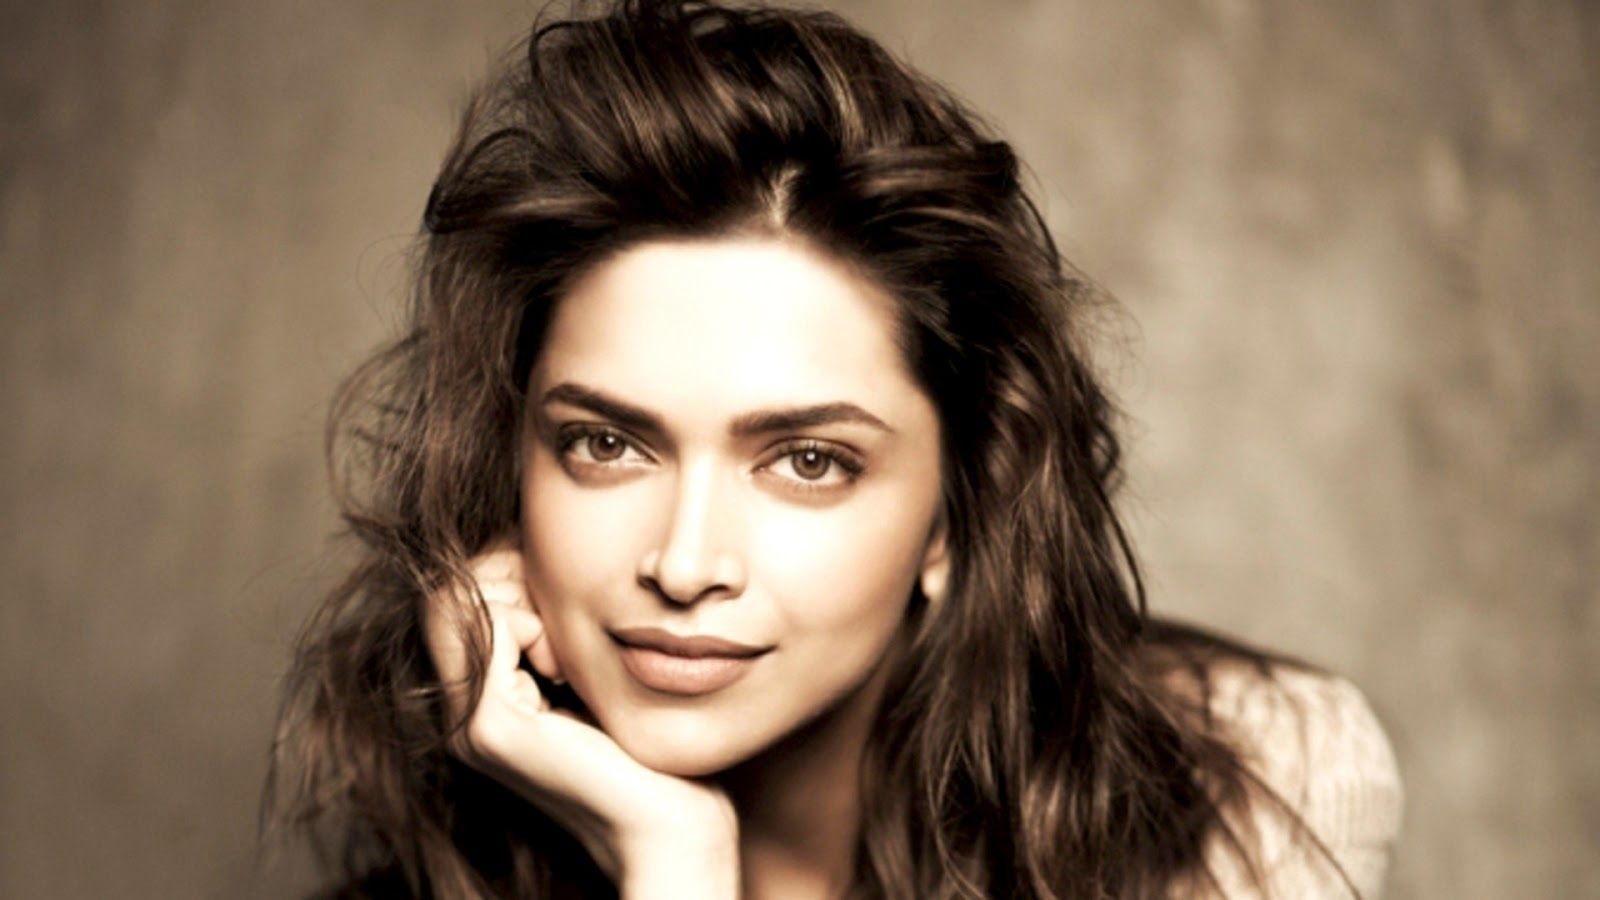 deepika padukone hd wallpapers backgrounds wallpaper | wallpapers